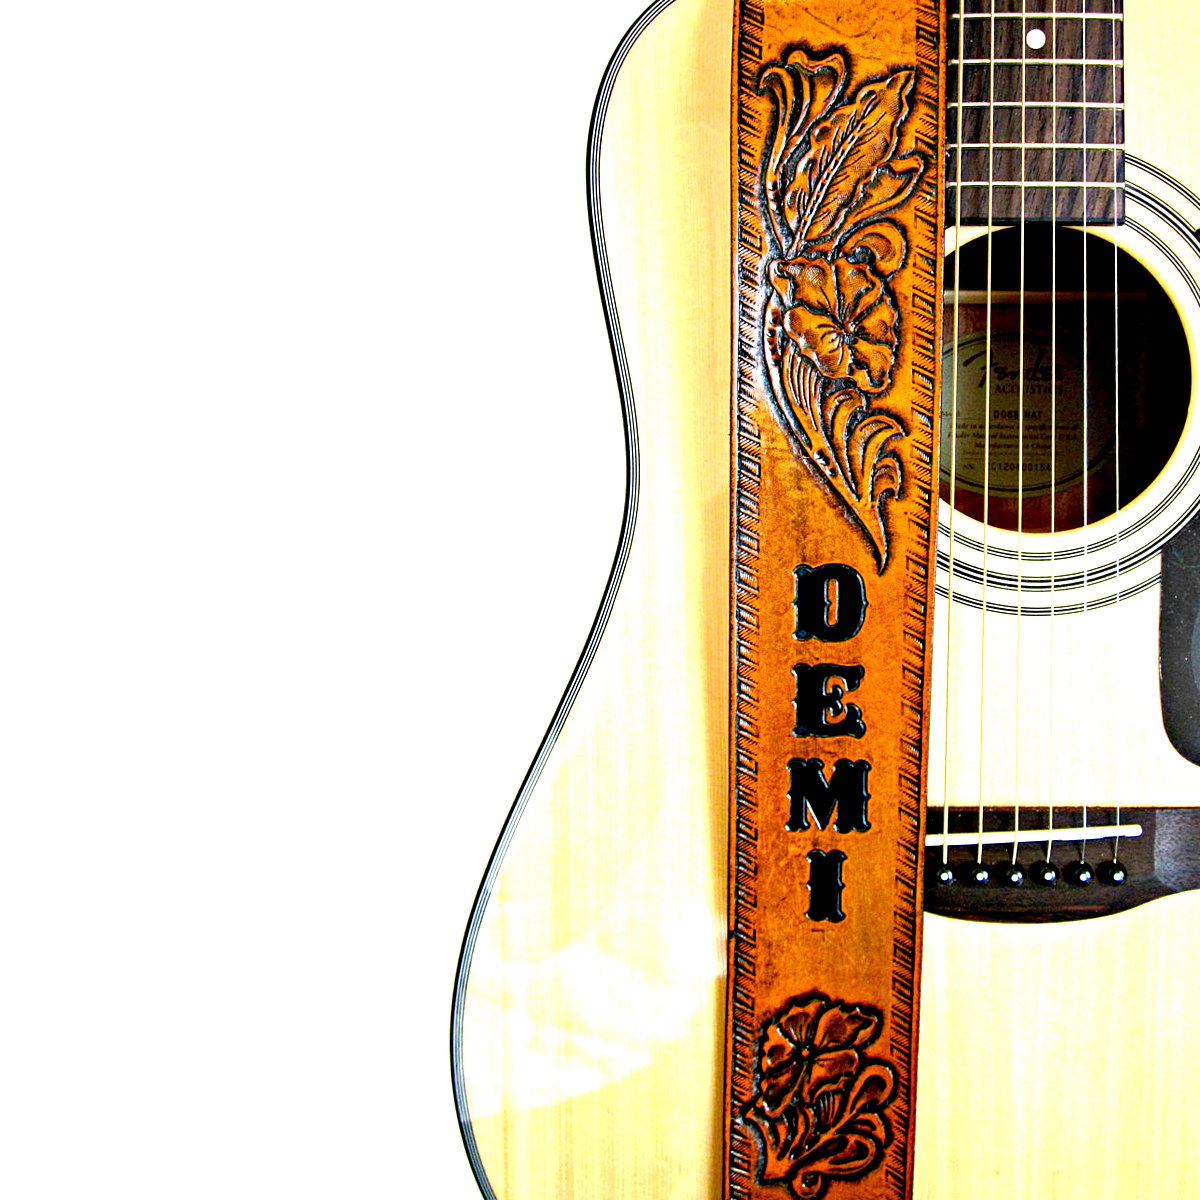 desert-flower-personalized-leather-guitar-strap-the-leather-smithy_1